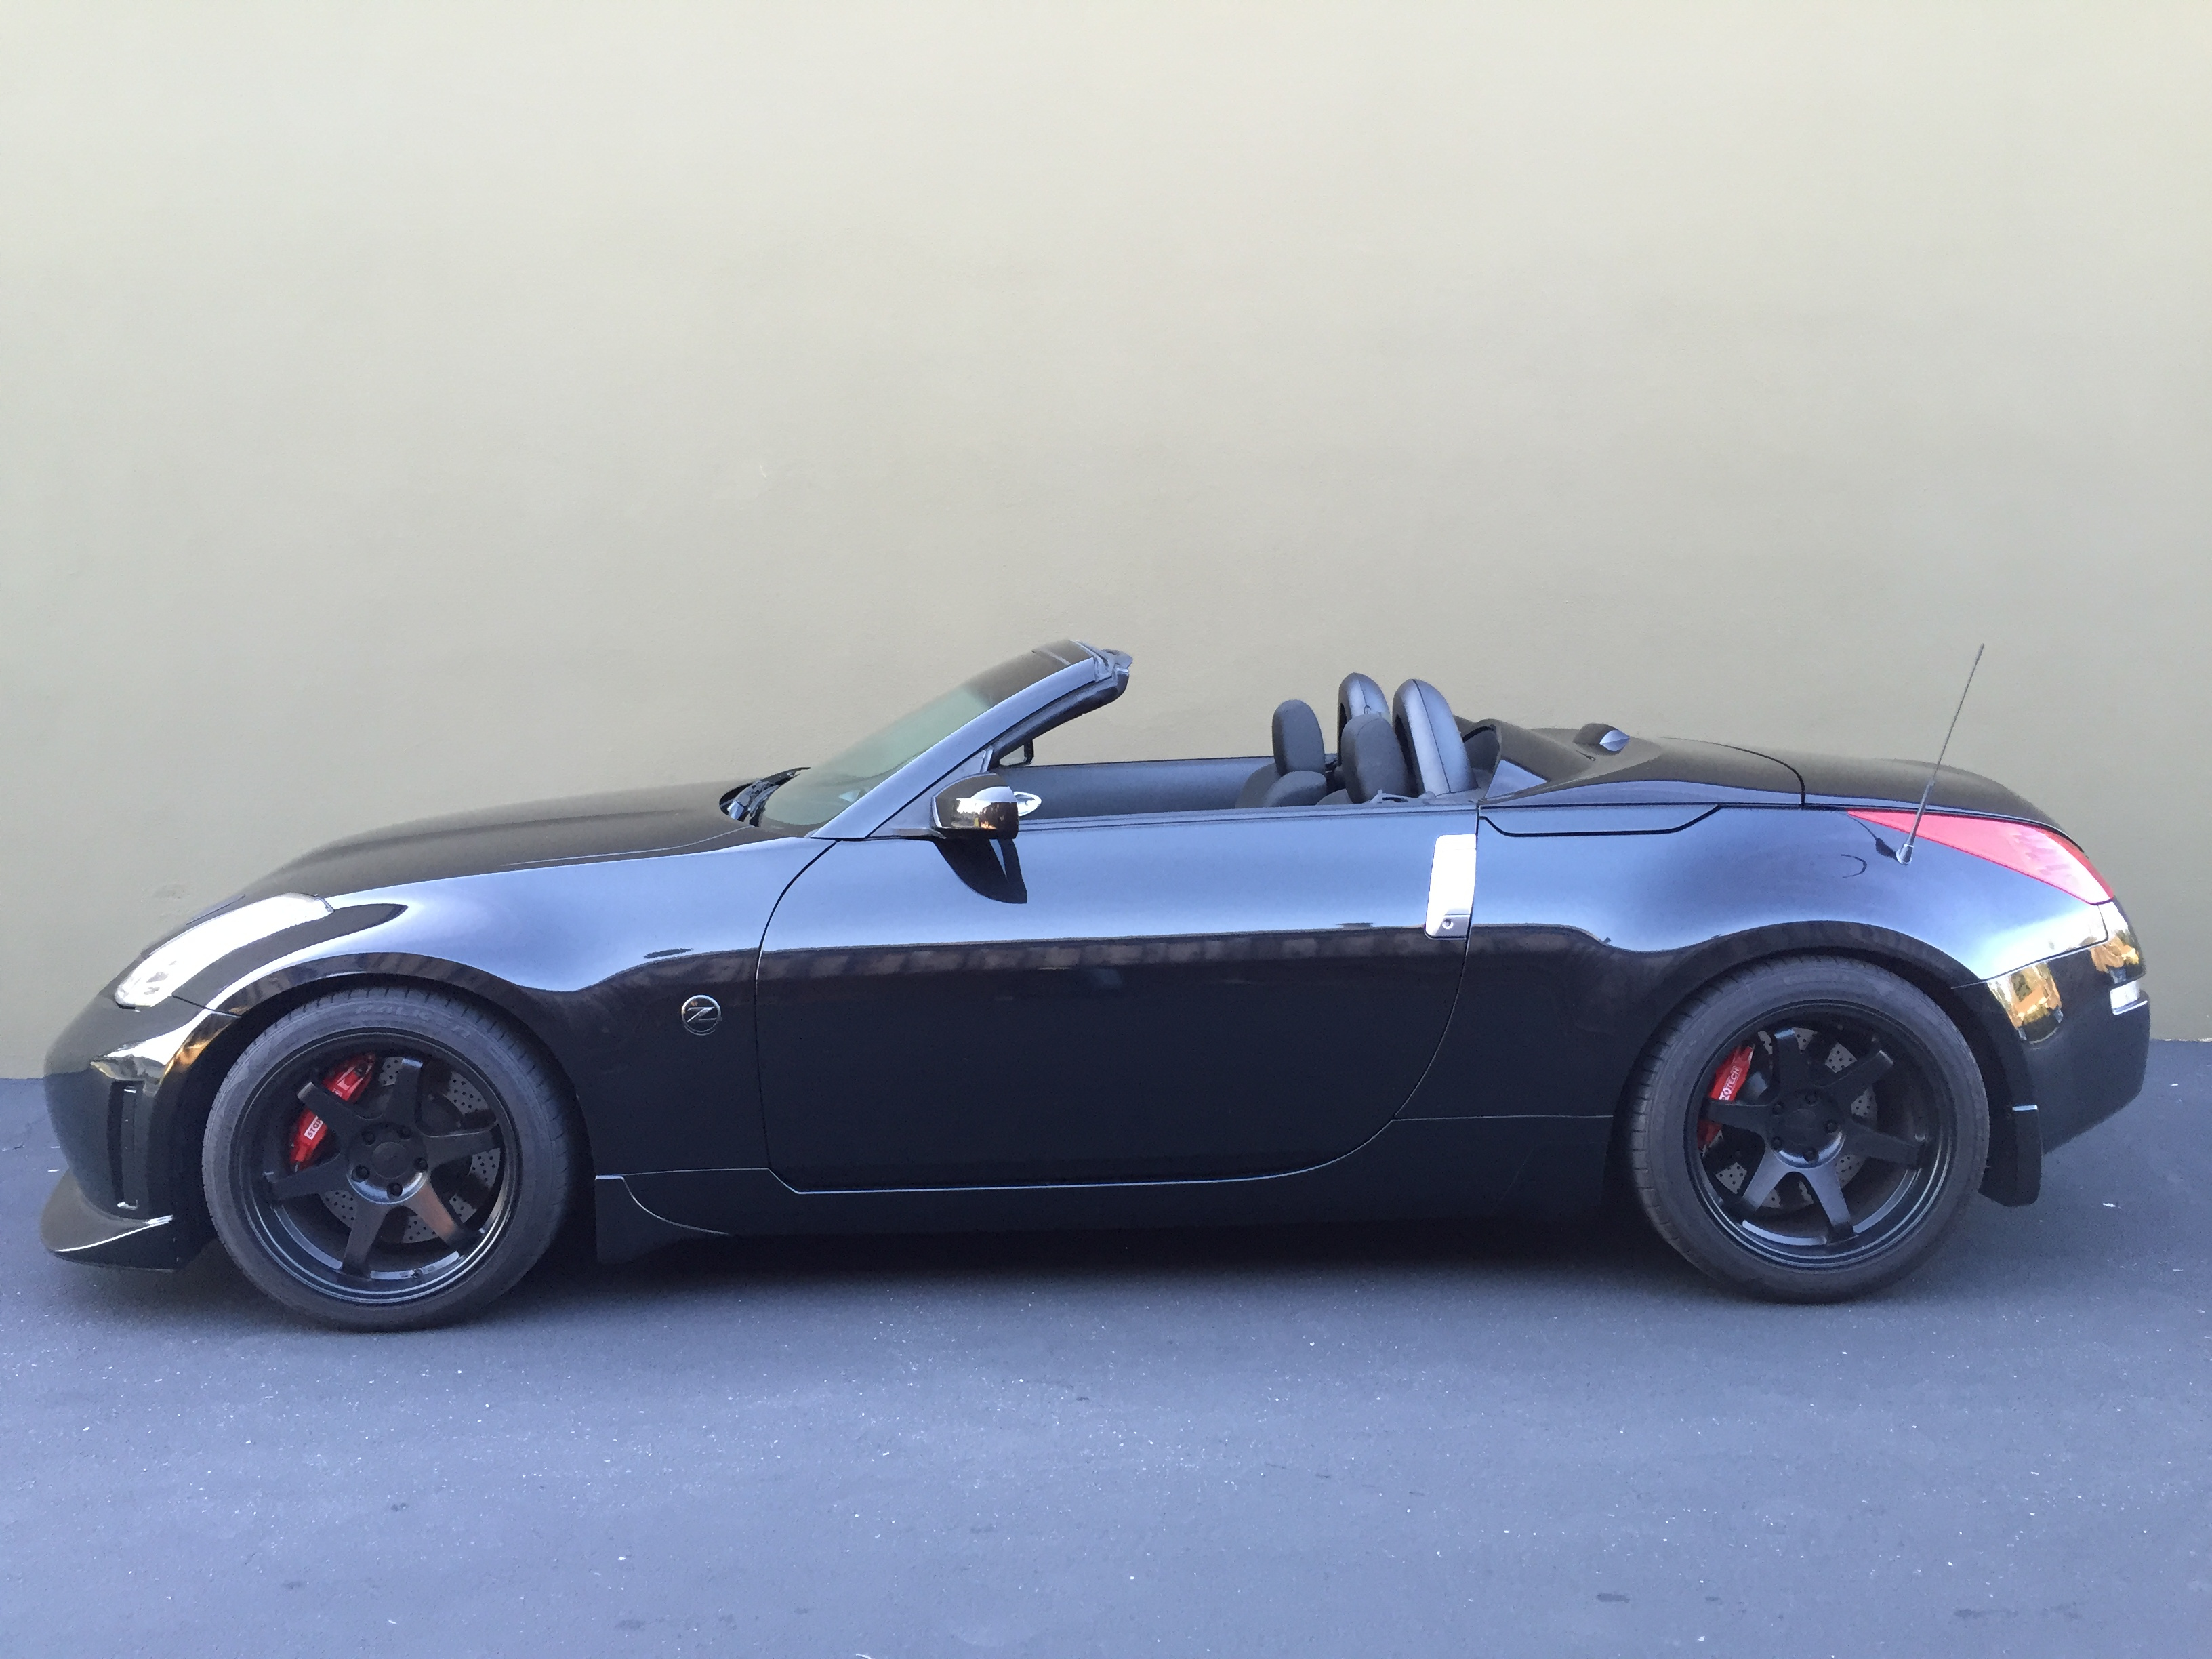 Z Car Blog 187 Post Topic 187 For Sale 2008 Nissan 350z Roadster